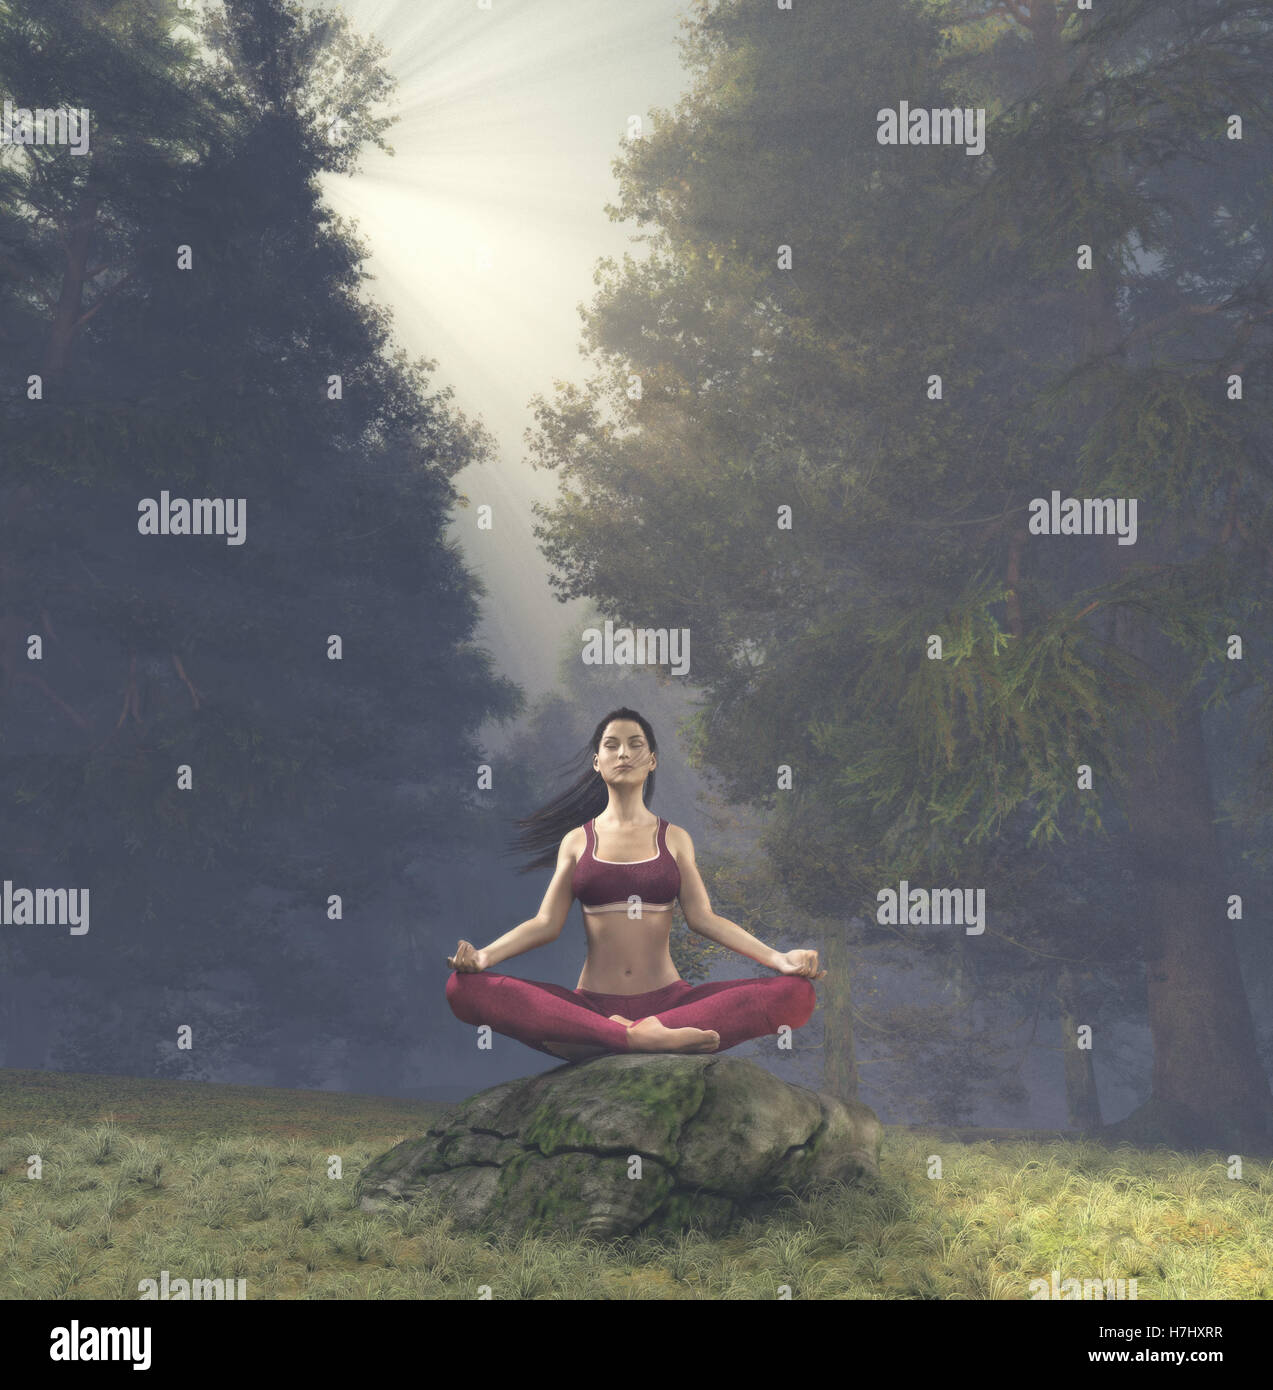 Woman meditating in lotus posture, doing yoga  on a rock  in the forest. This is a 3d render illustration. Stock Photo